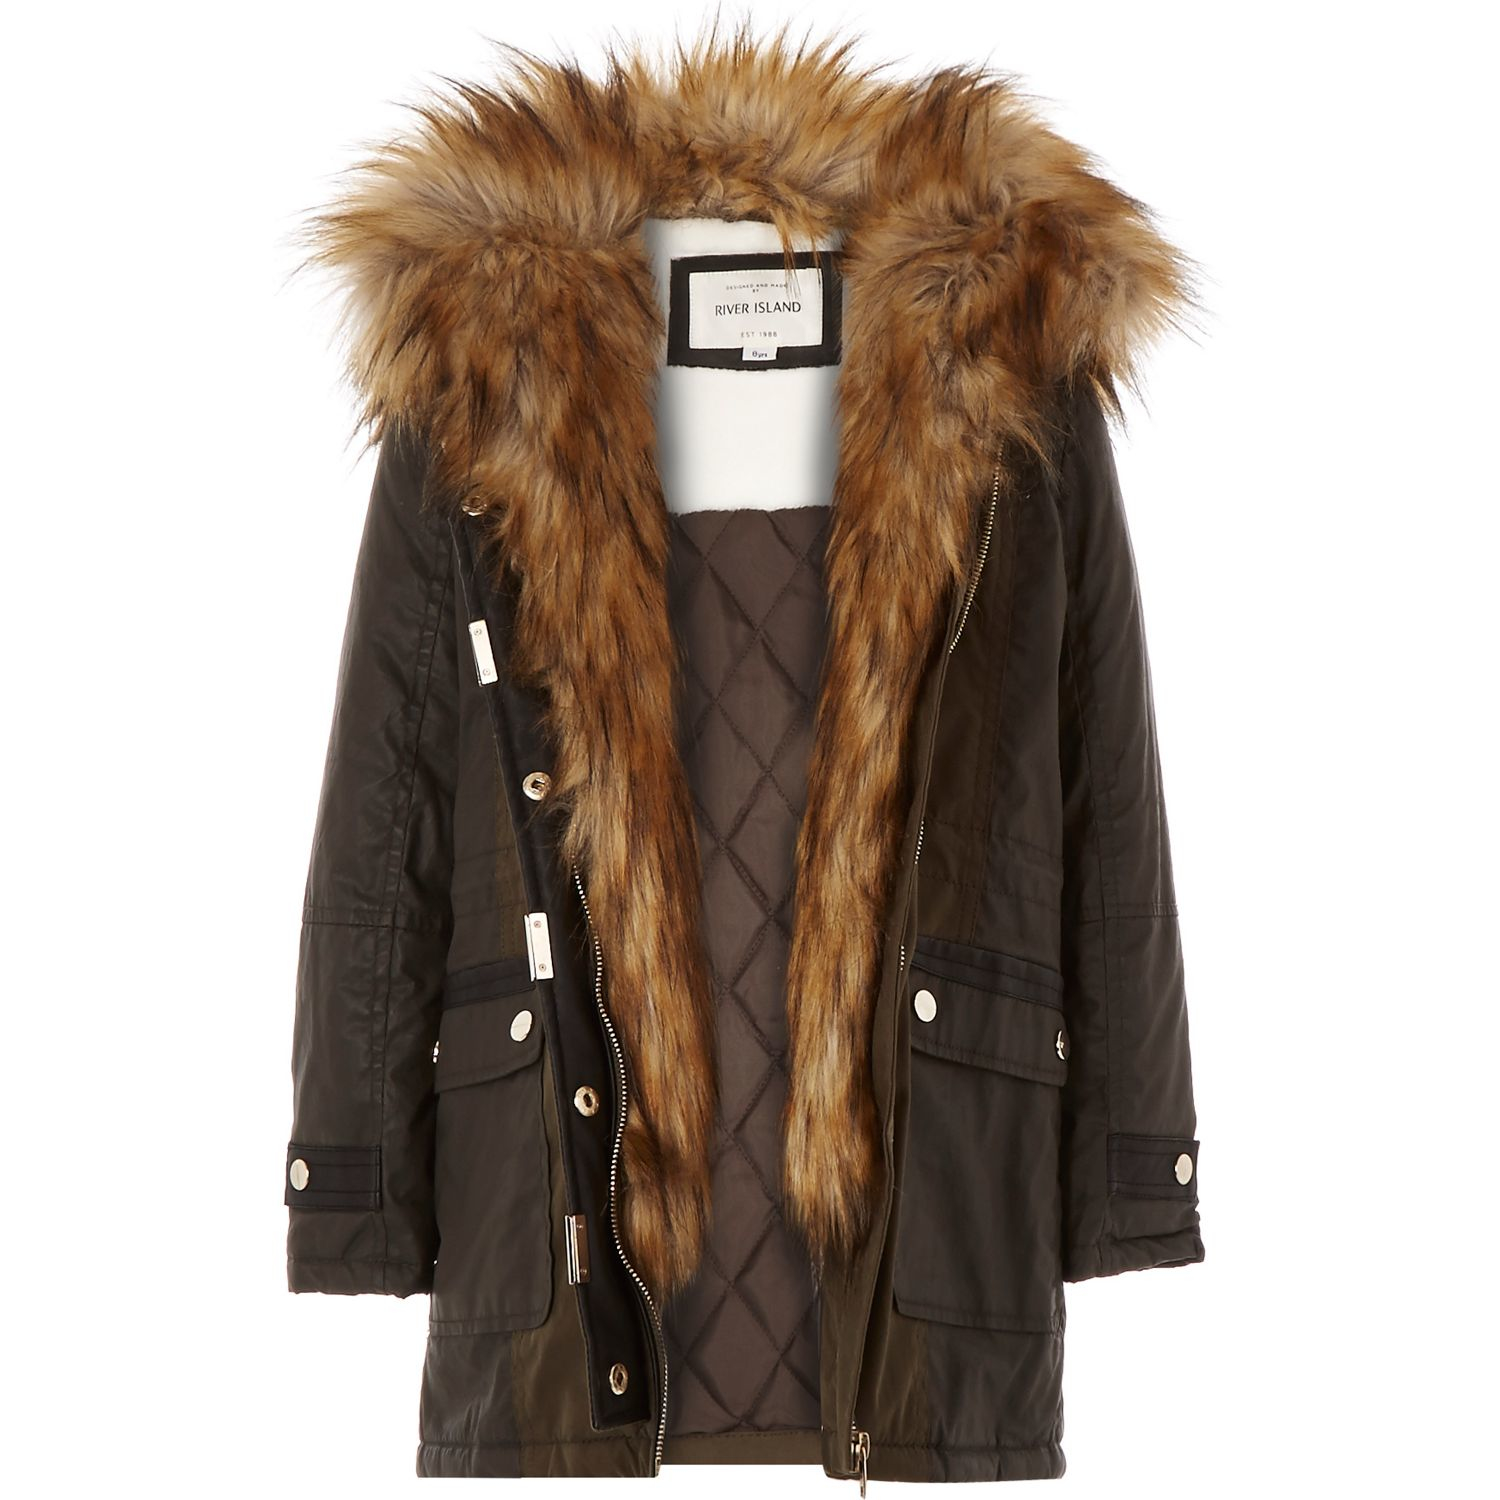 River Island Parka With Faux Fur Collar In Khaki